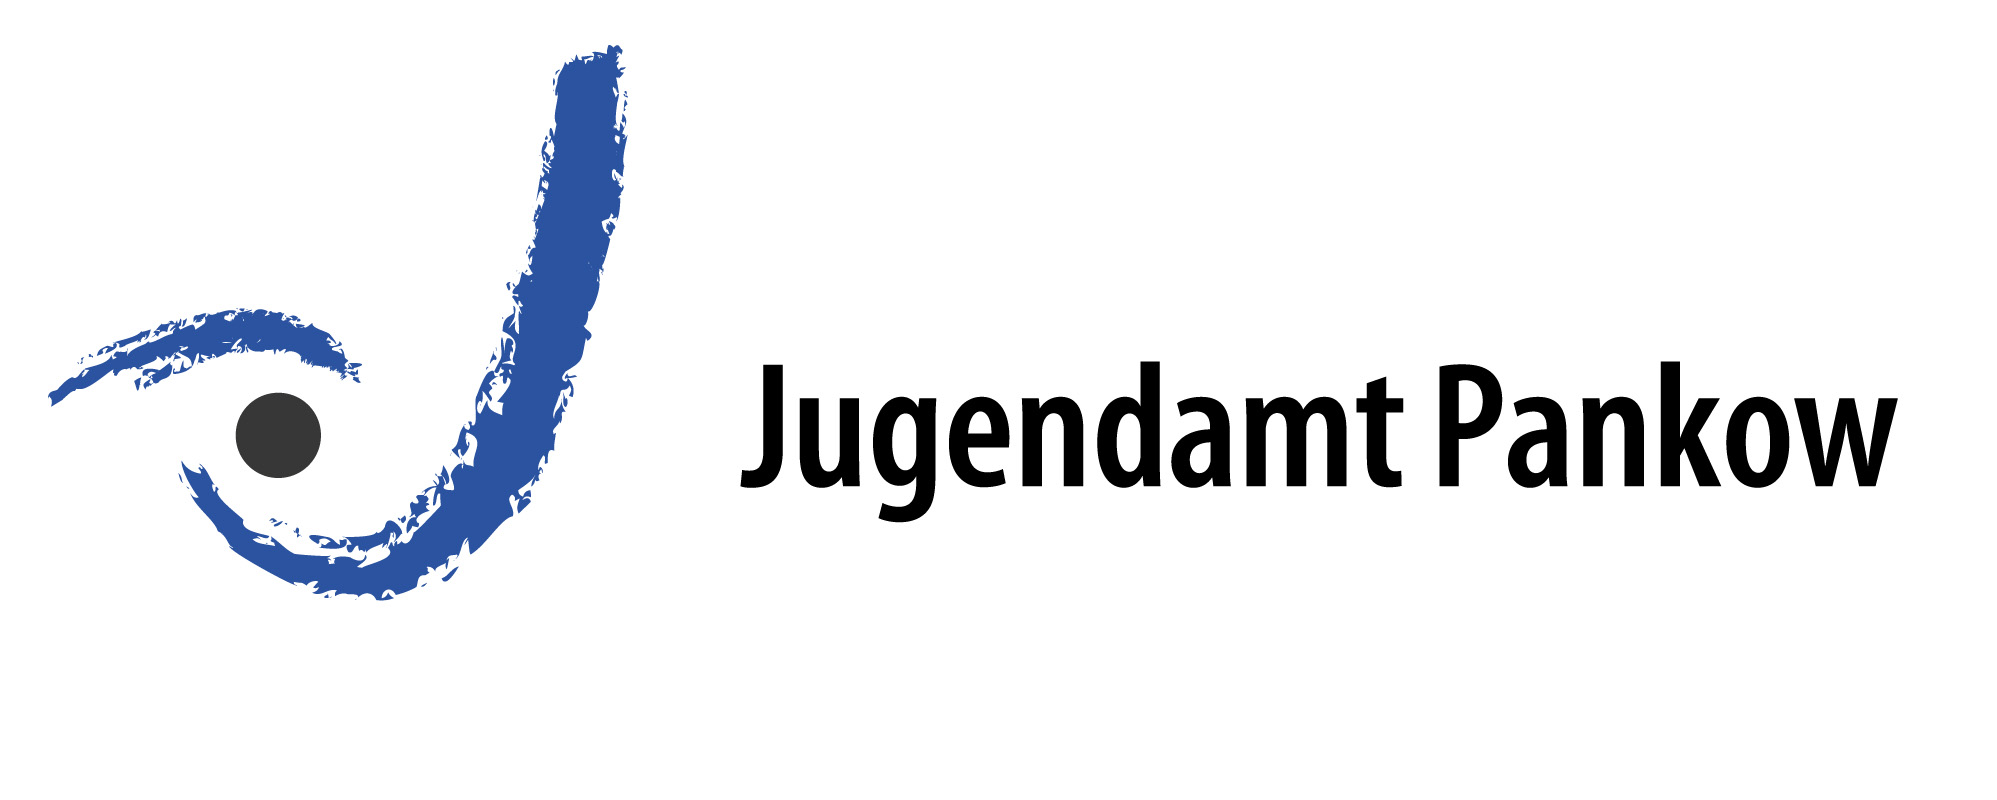 Jugensamt Pankow